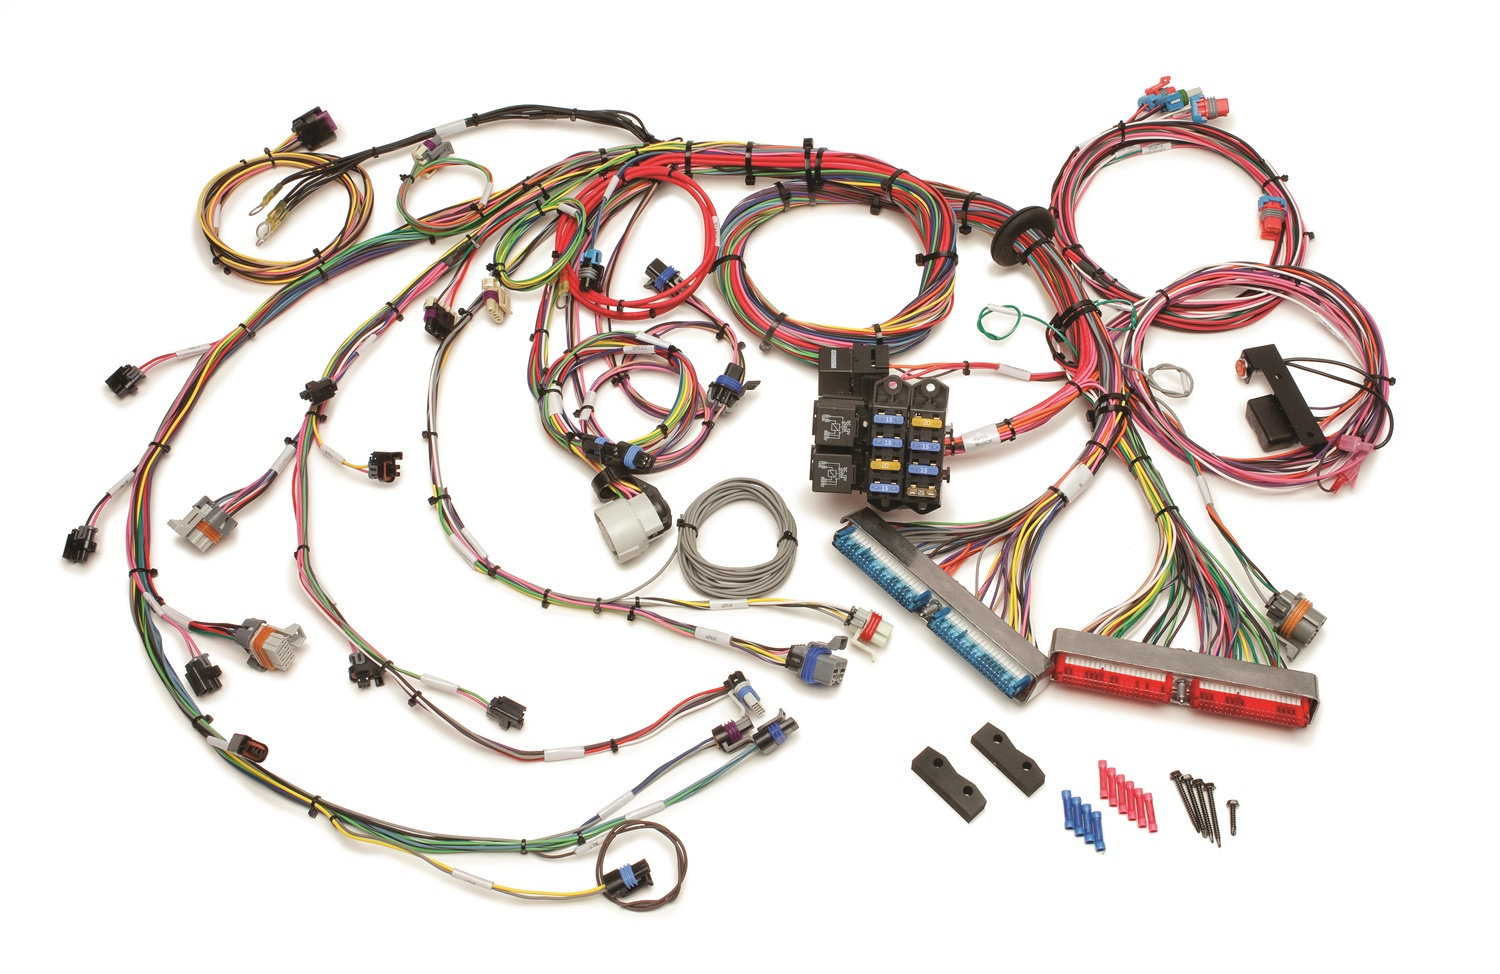 howell fuel injection wiring harness gm fuel injection wiring harness painless wiring 60217 gm gen iii fuel injection harness